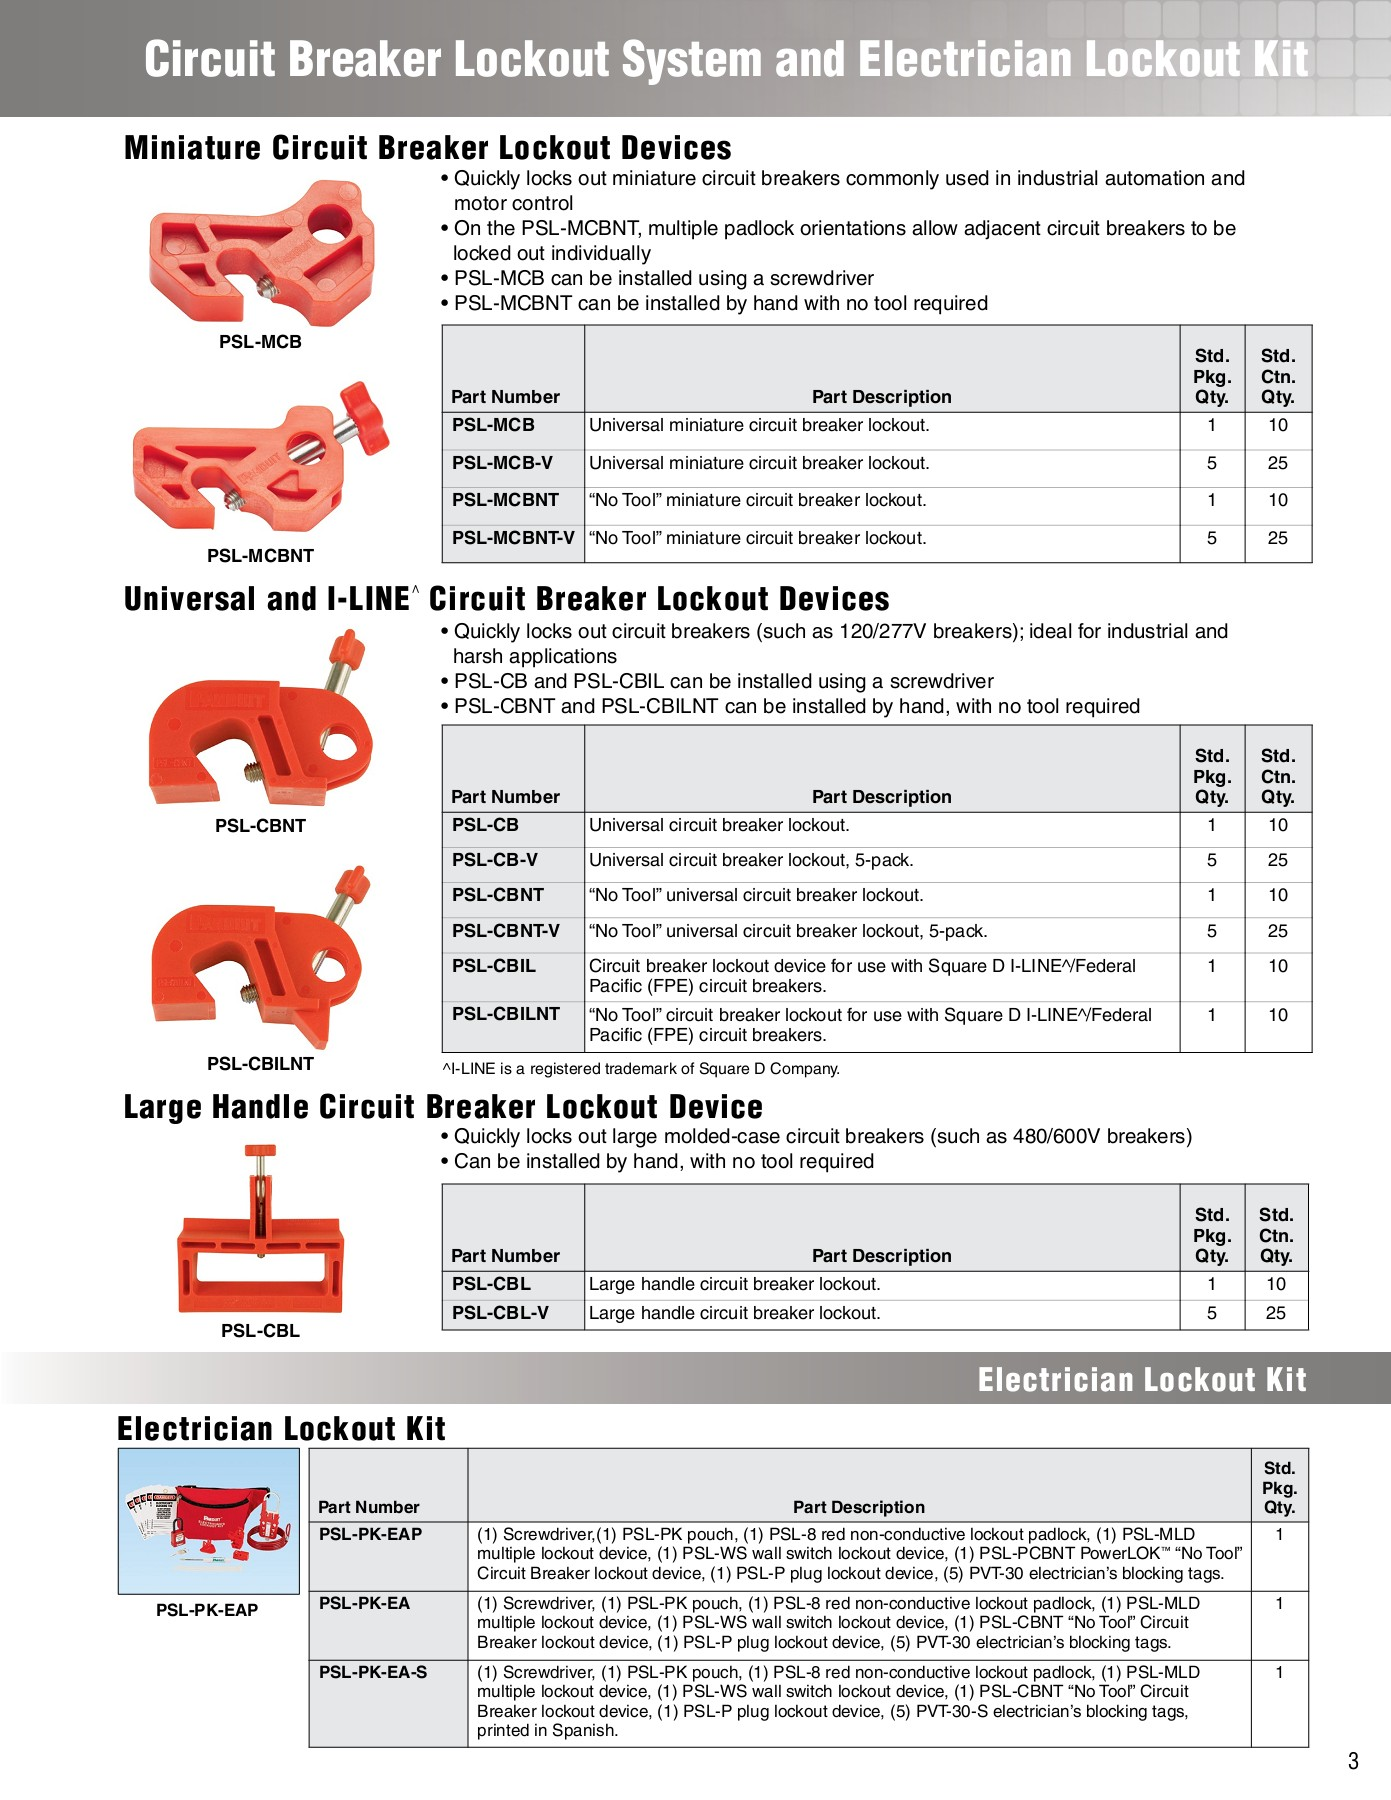 Panduit PSL-CBILNT No-Tool I-Line Circuit Breaker Lockout Device Red